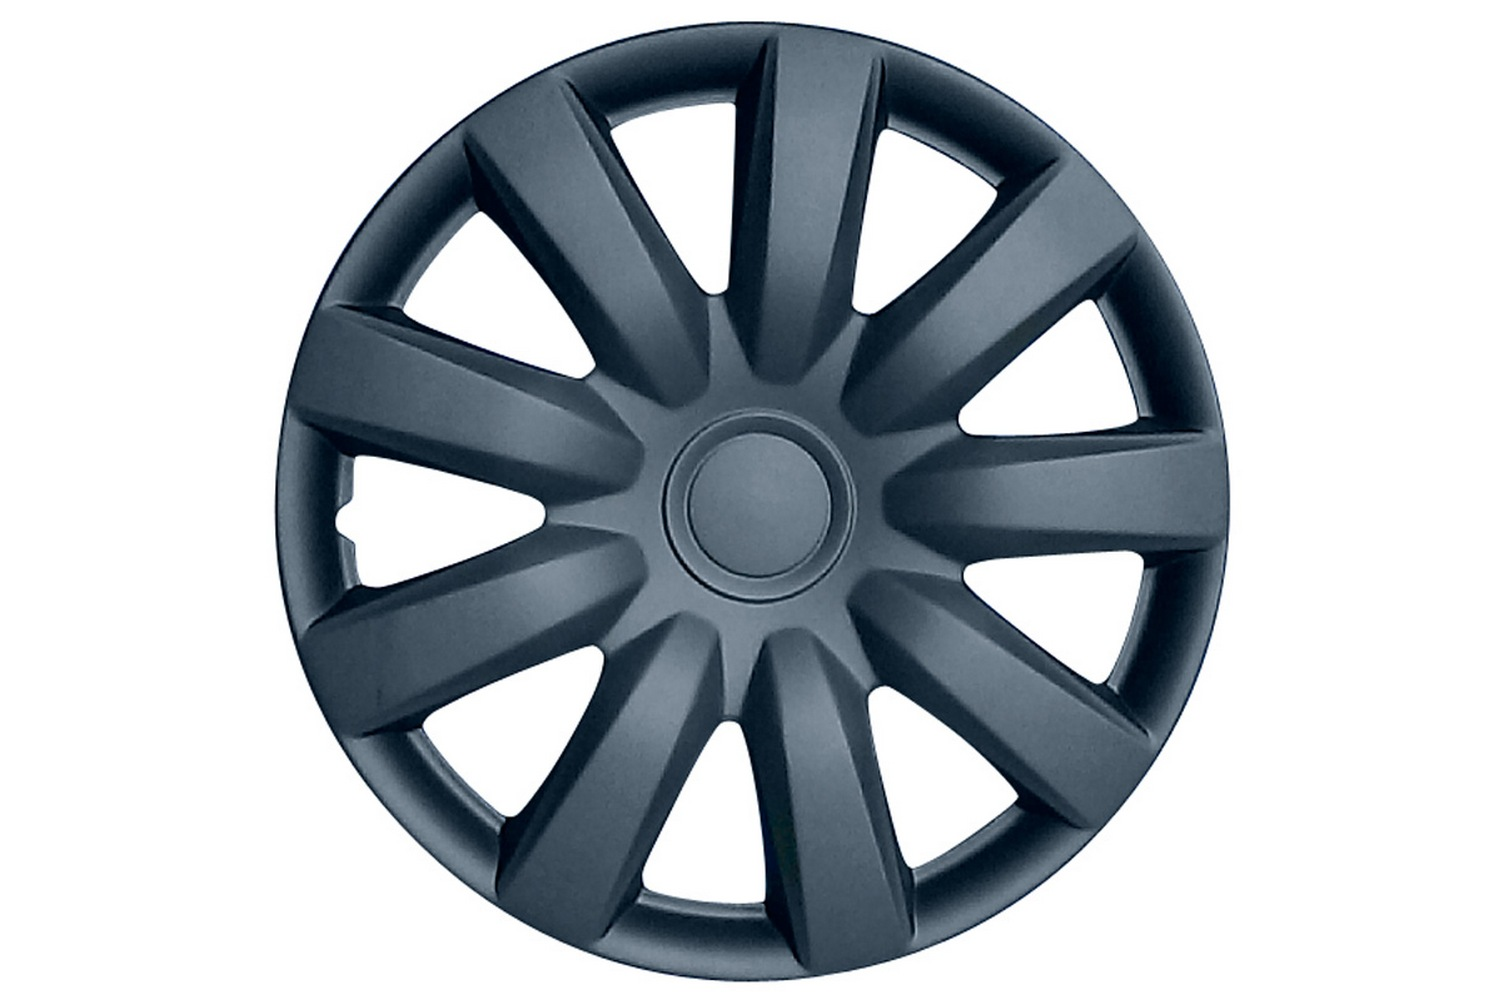 Wheel Cover Set Alabama 13 Inch 4 Pcs Car Parts Expert